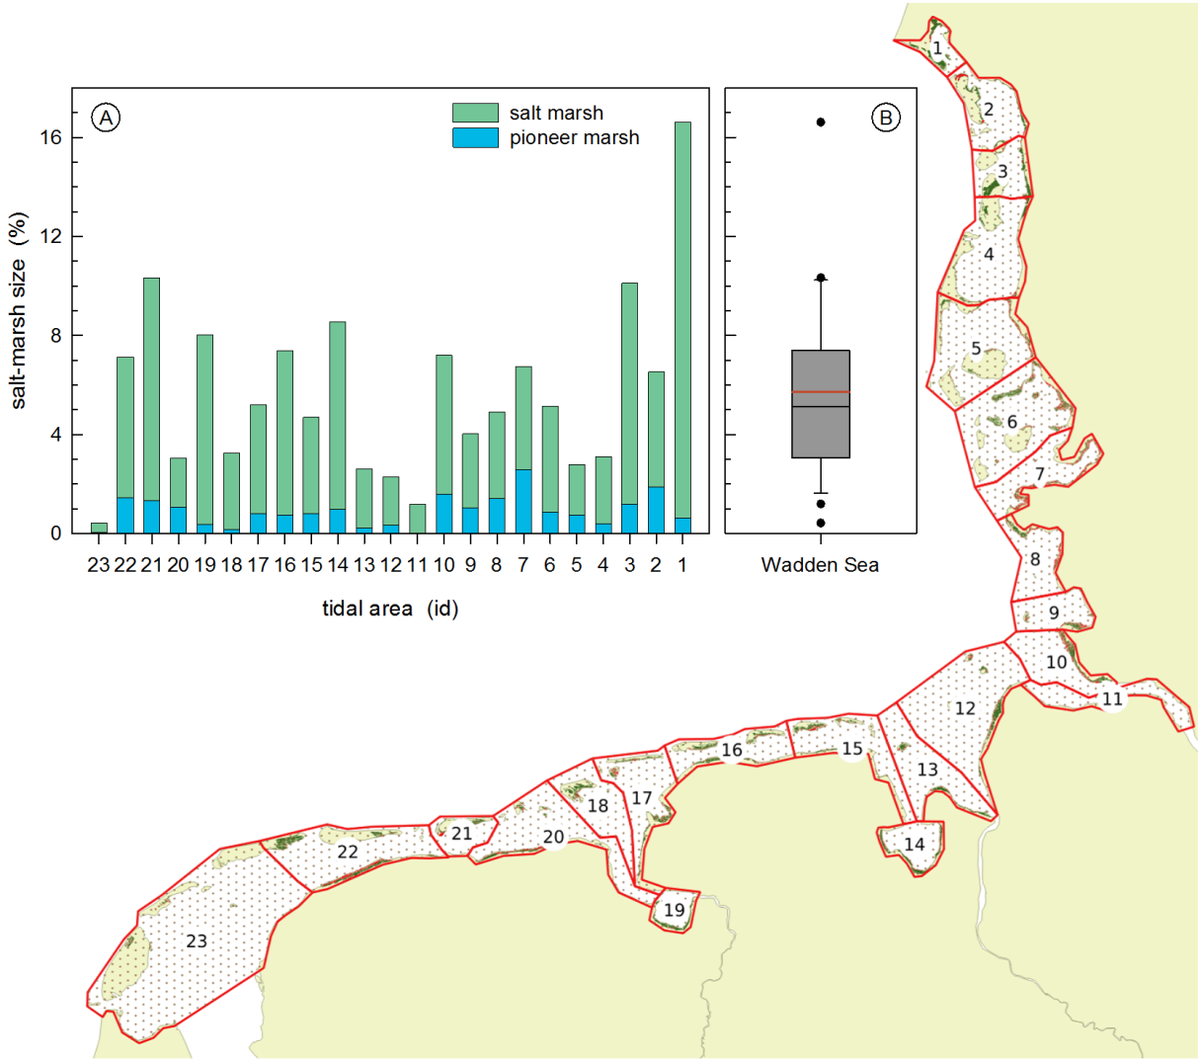 Distribution of salt marshes in the Wadden Sea